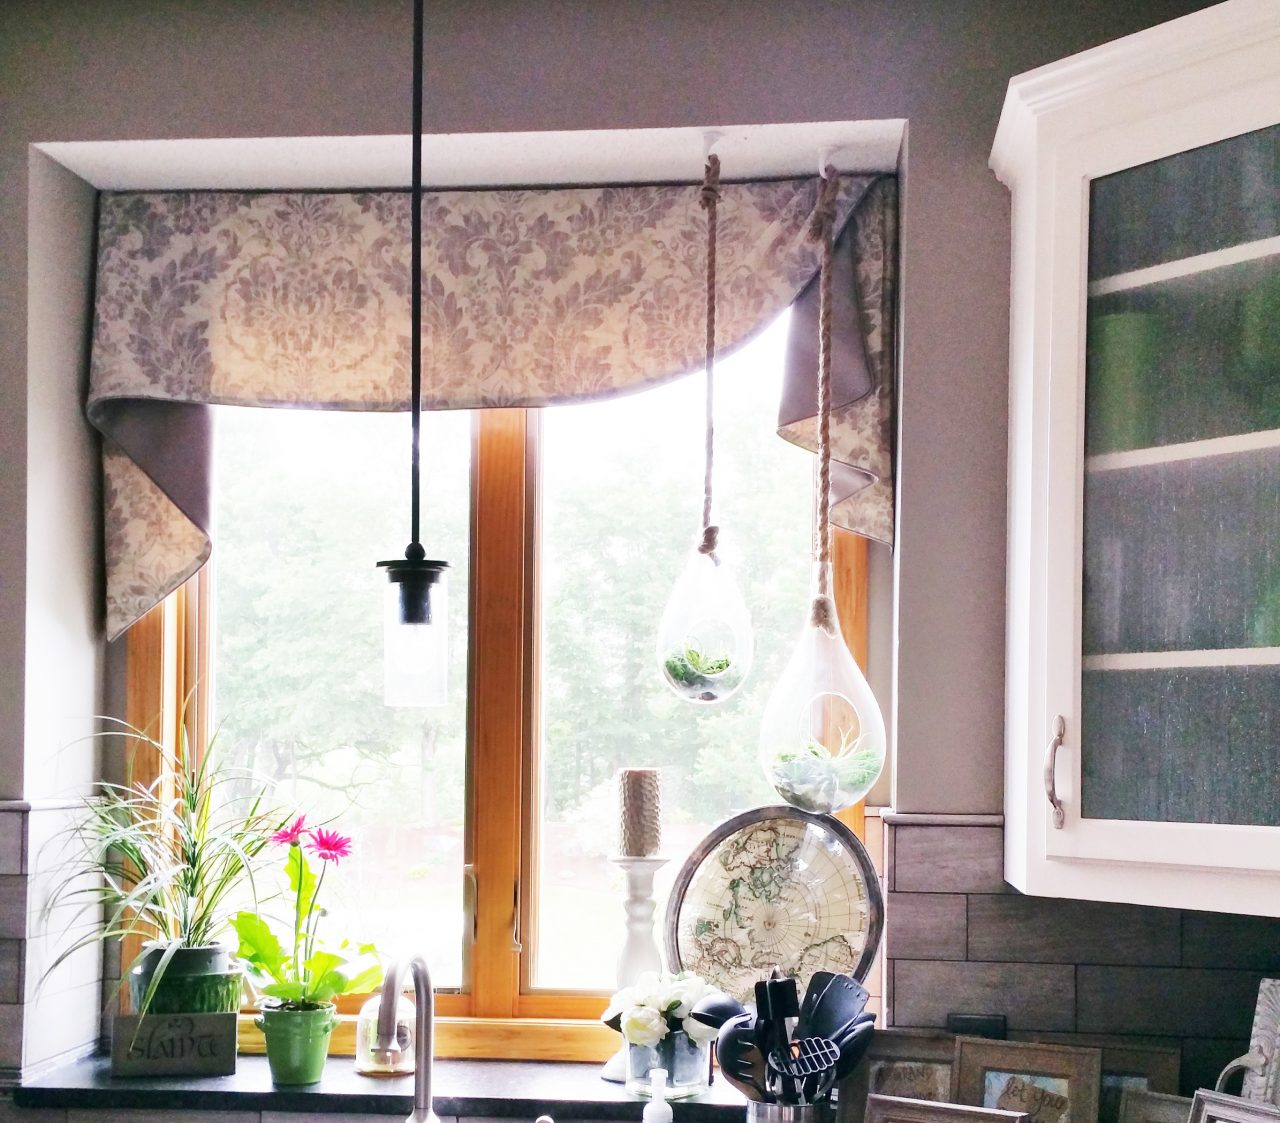 Kitchen sink window with asymmetrical Moreland valance with Trend jacquard fabric and gray contrast within the jabots.